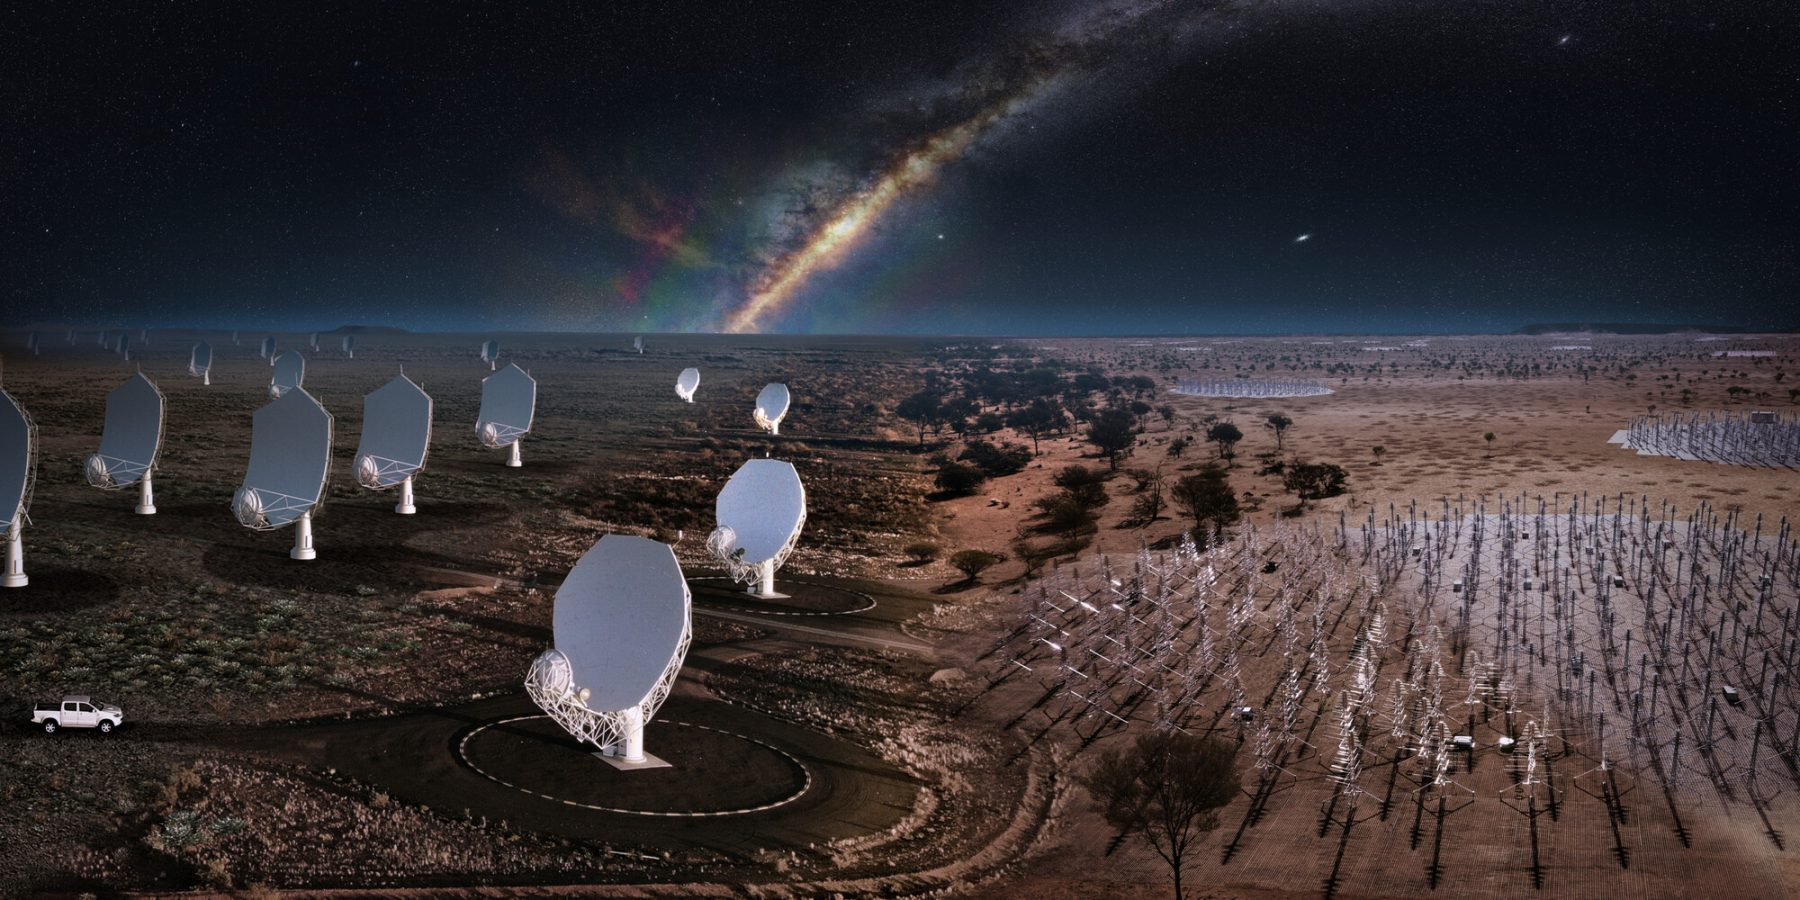 Artist's composite impression of the Square Kilometer Array telescopes to be built in South Africa and Australia. Credit: SKAO, ICRAR, SARAO, Hurley-Walker (Curtin / ICRAR) and the GLEAM Team